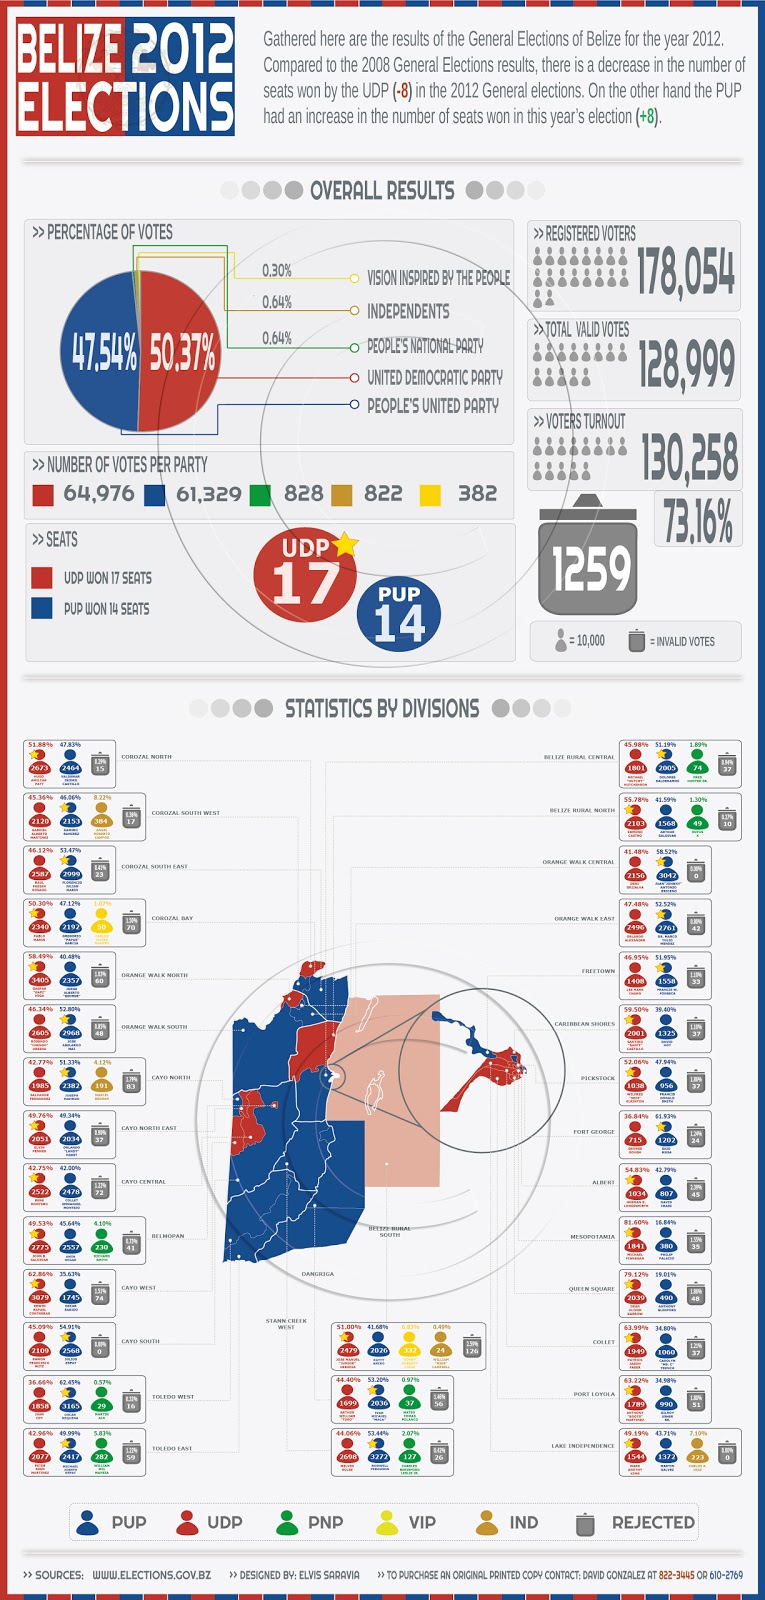 belize 2012 election results infographic